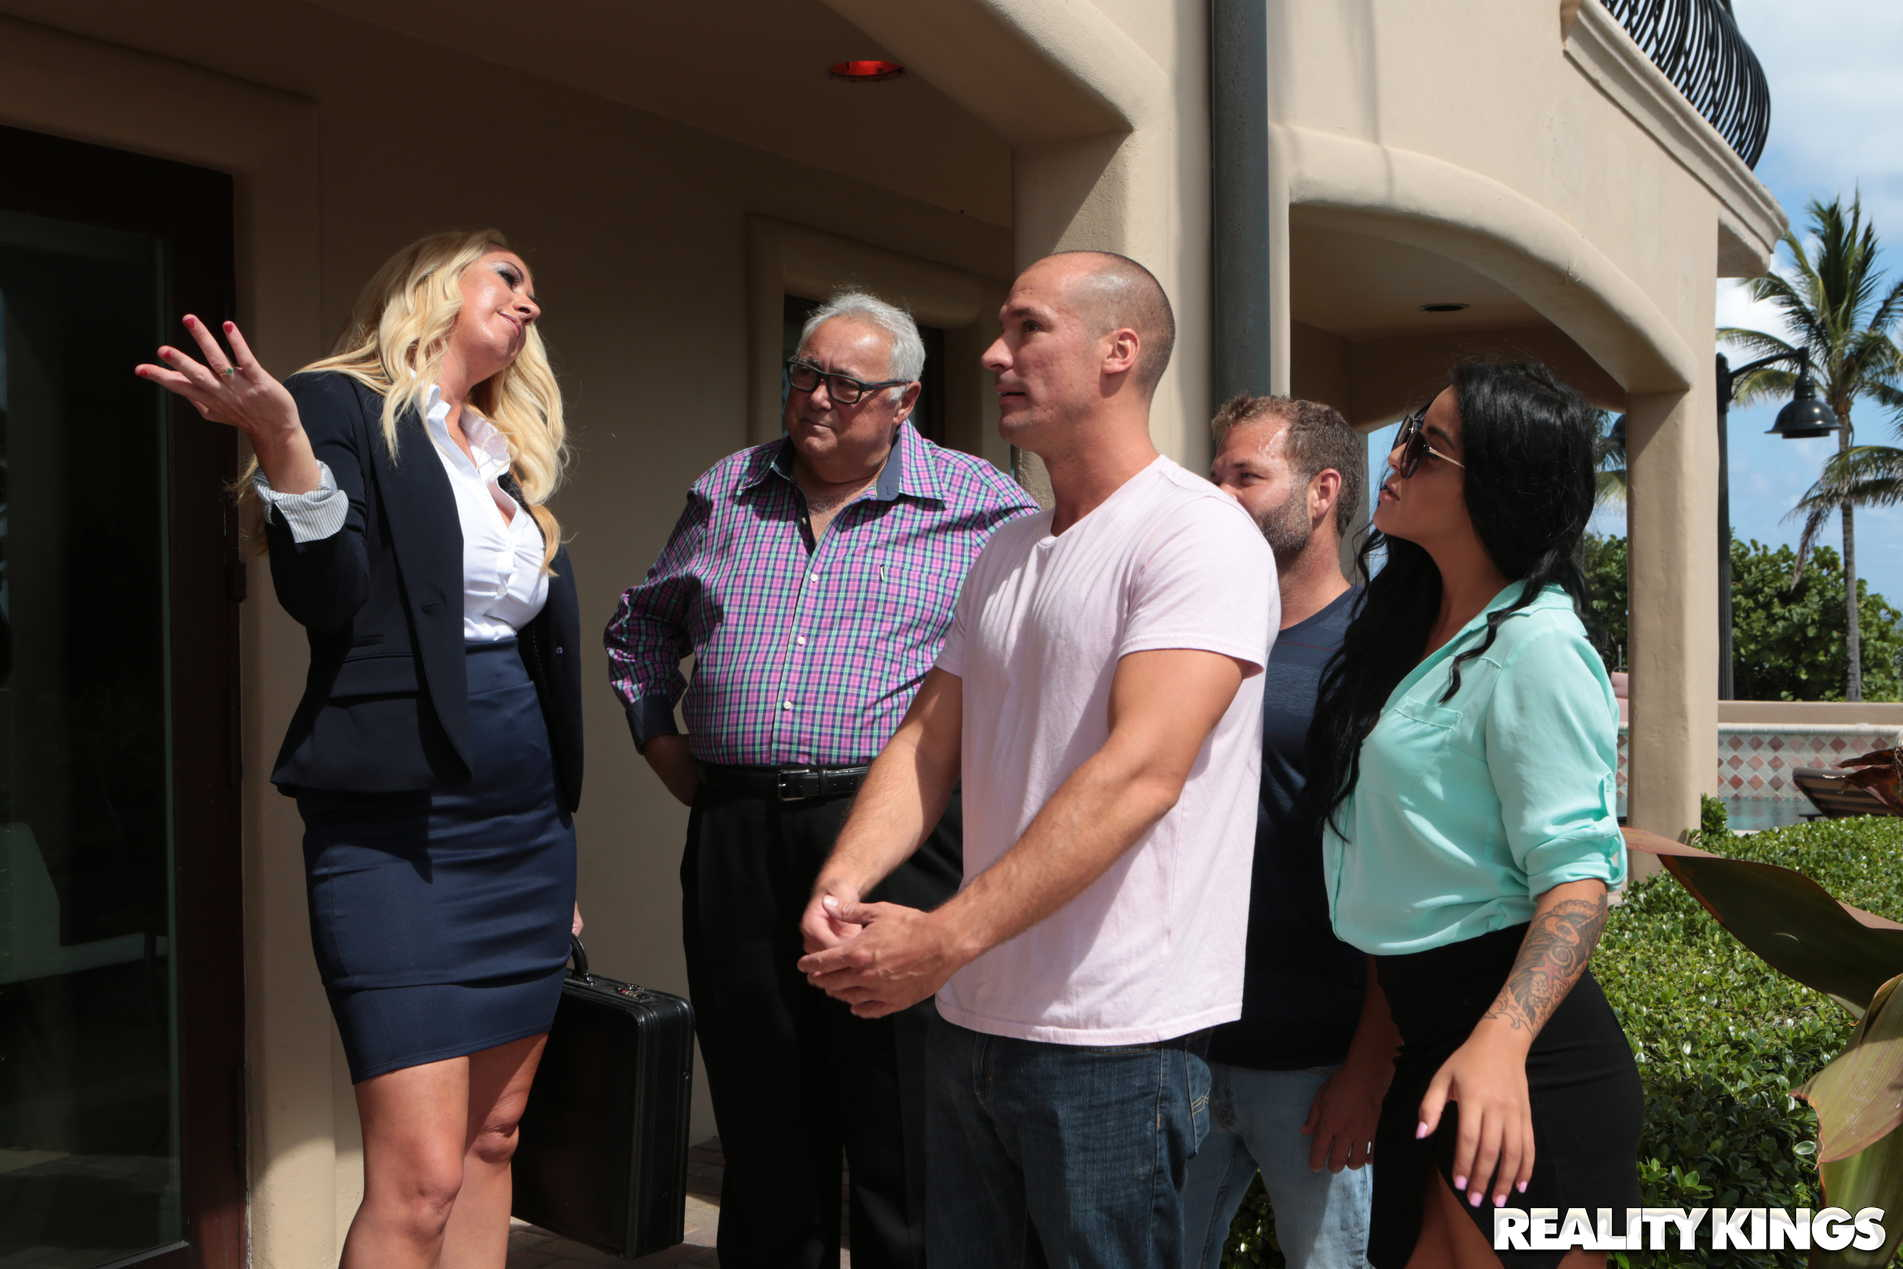 Reality Kings 'Affordable Housing' starring Janna Hicks (Photo 39)